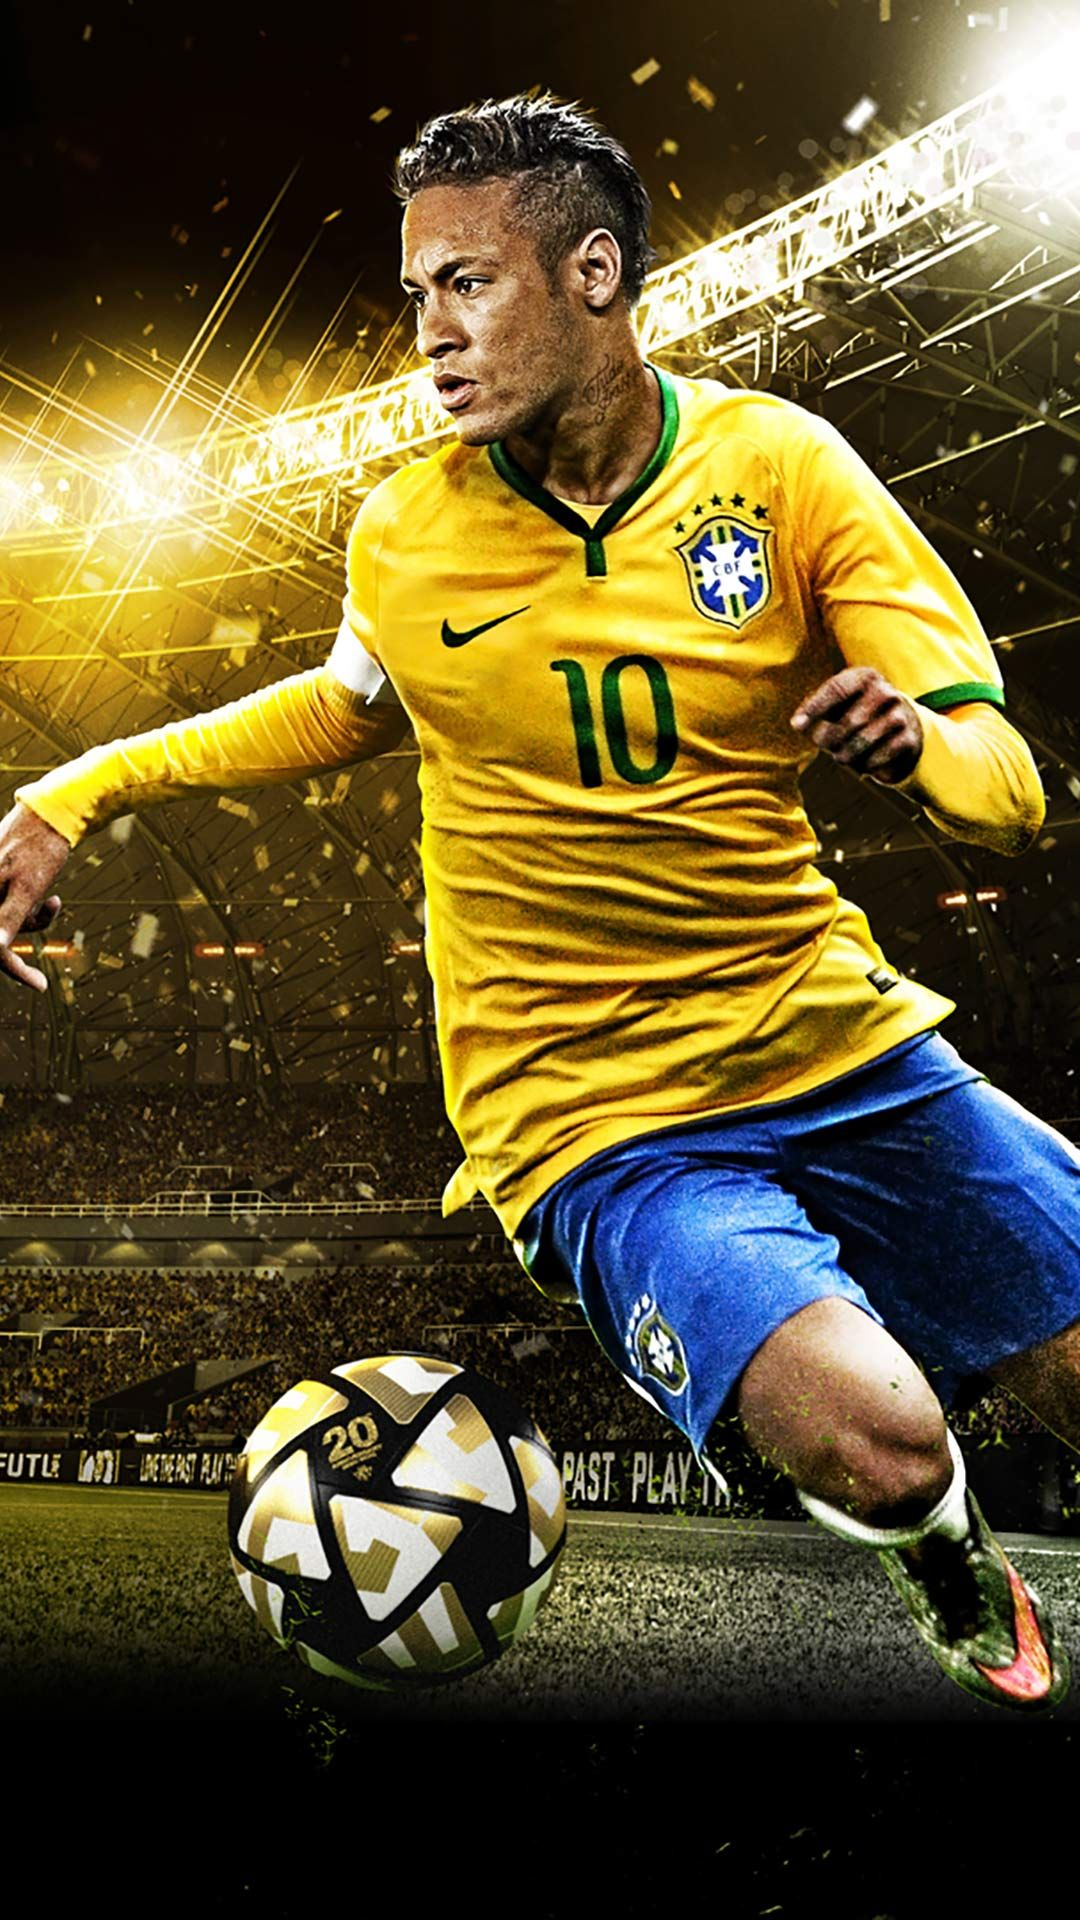 Neyma Jr Pes 16 android iphone wallpaper mobile background